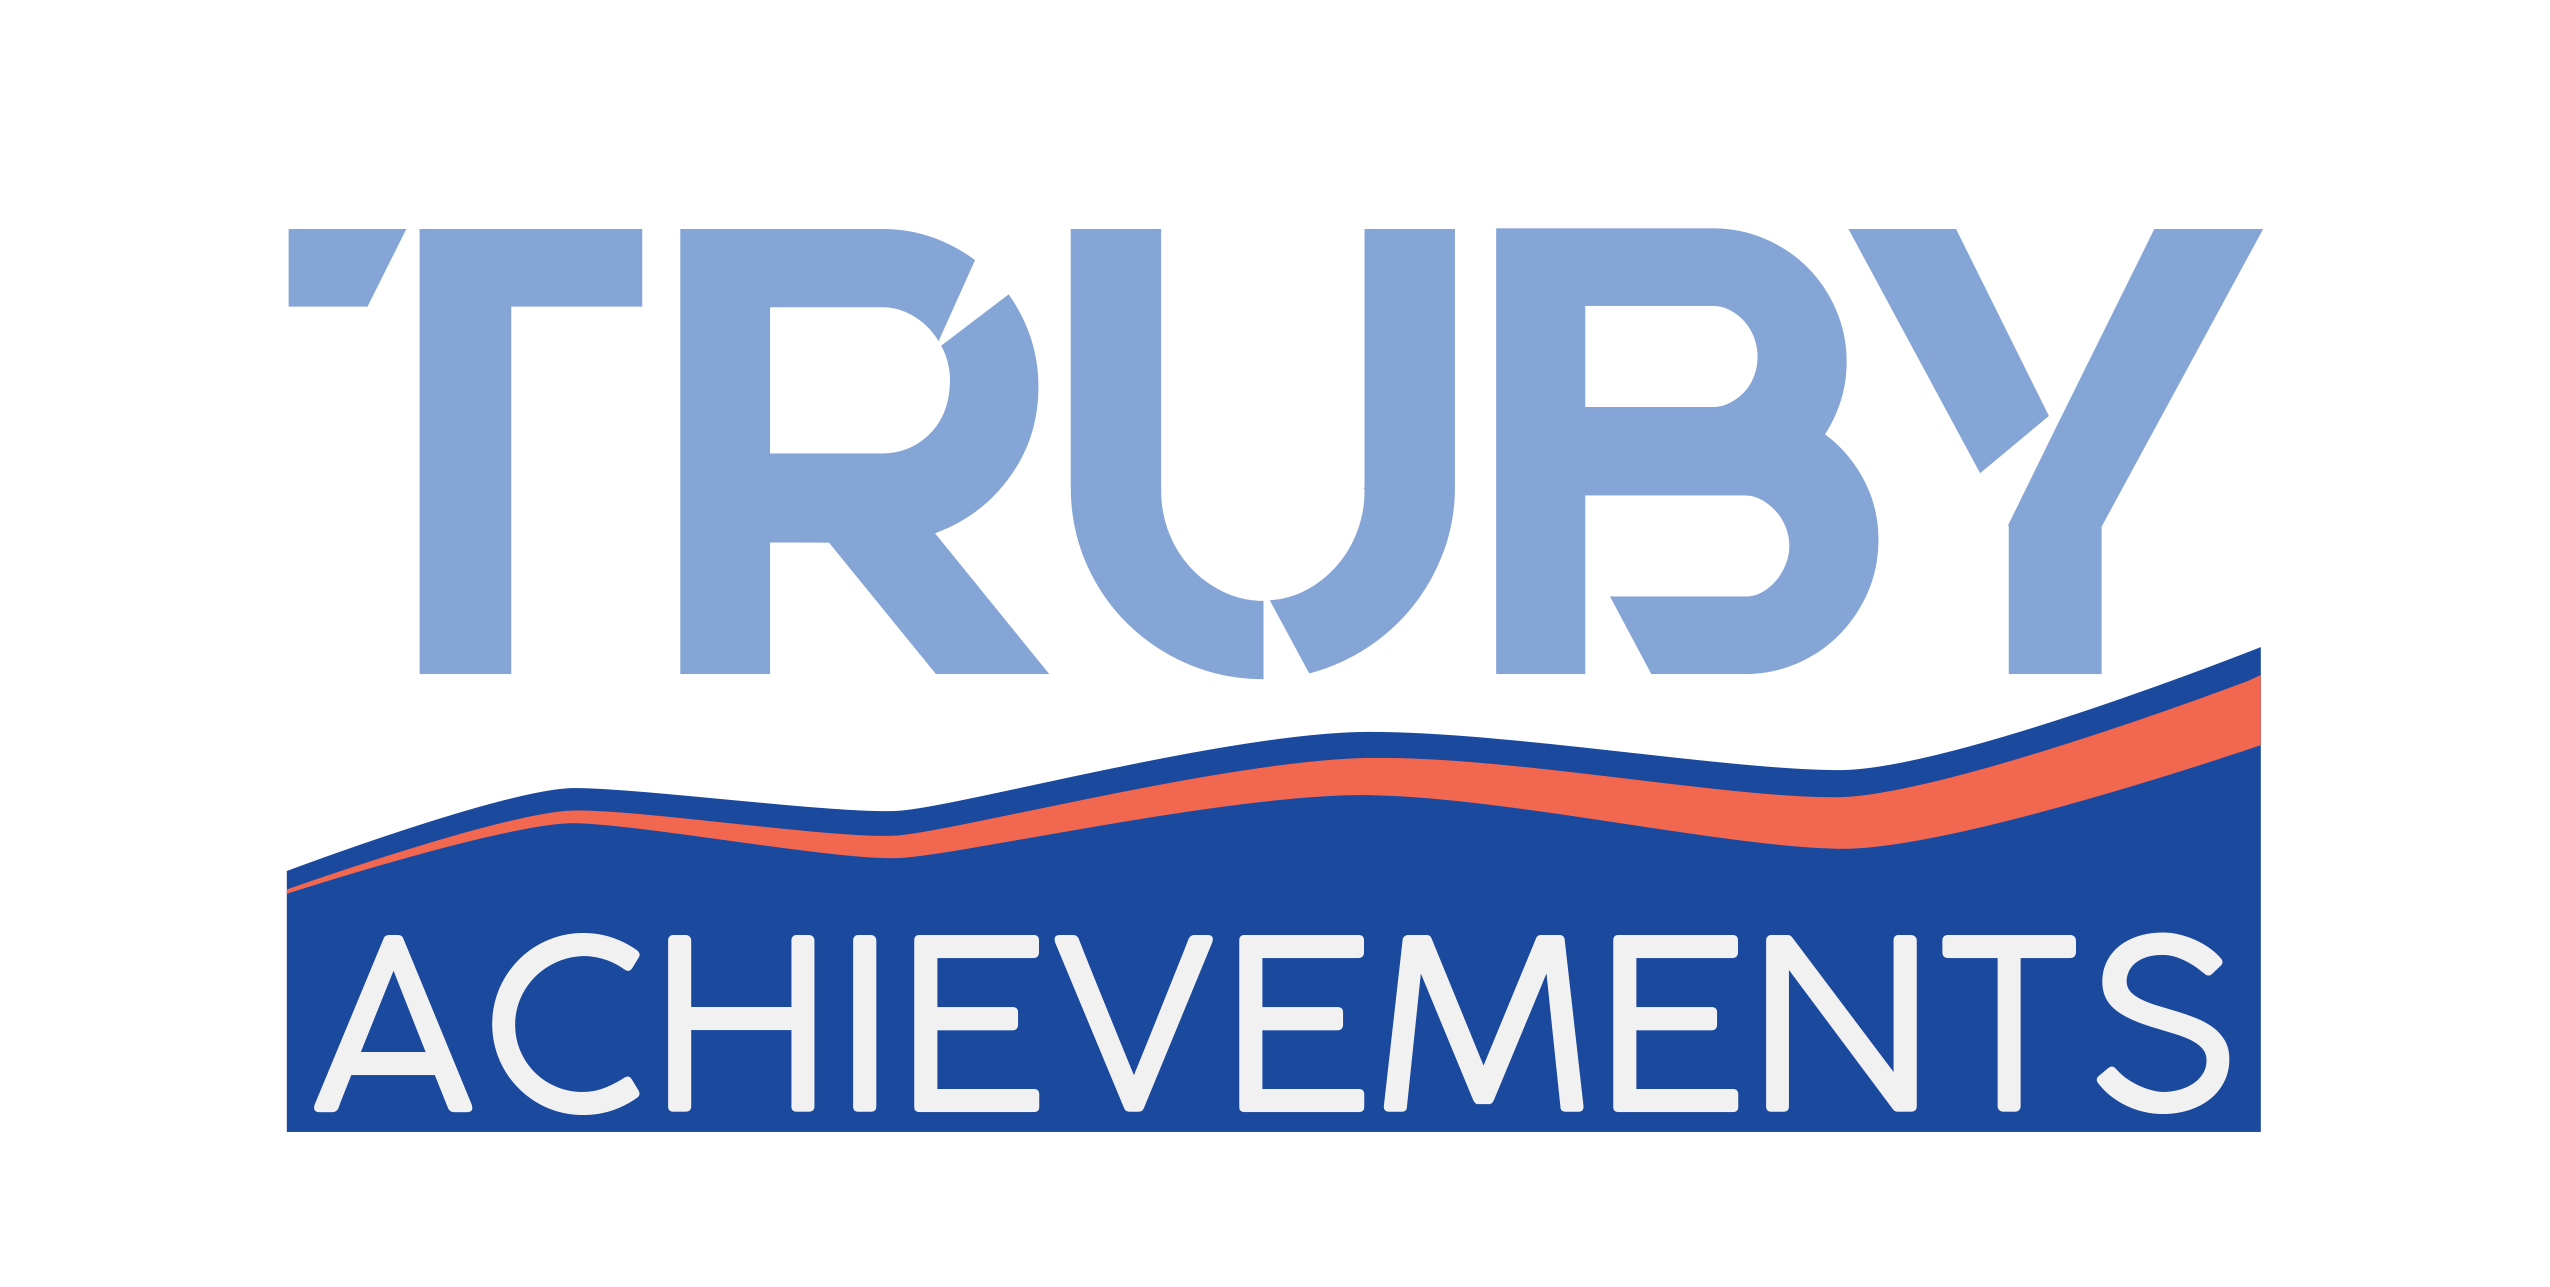 truby achievements logo a leading source for leadership and management training